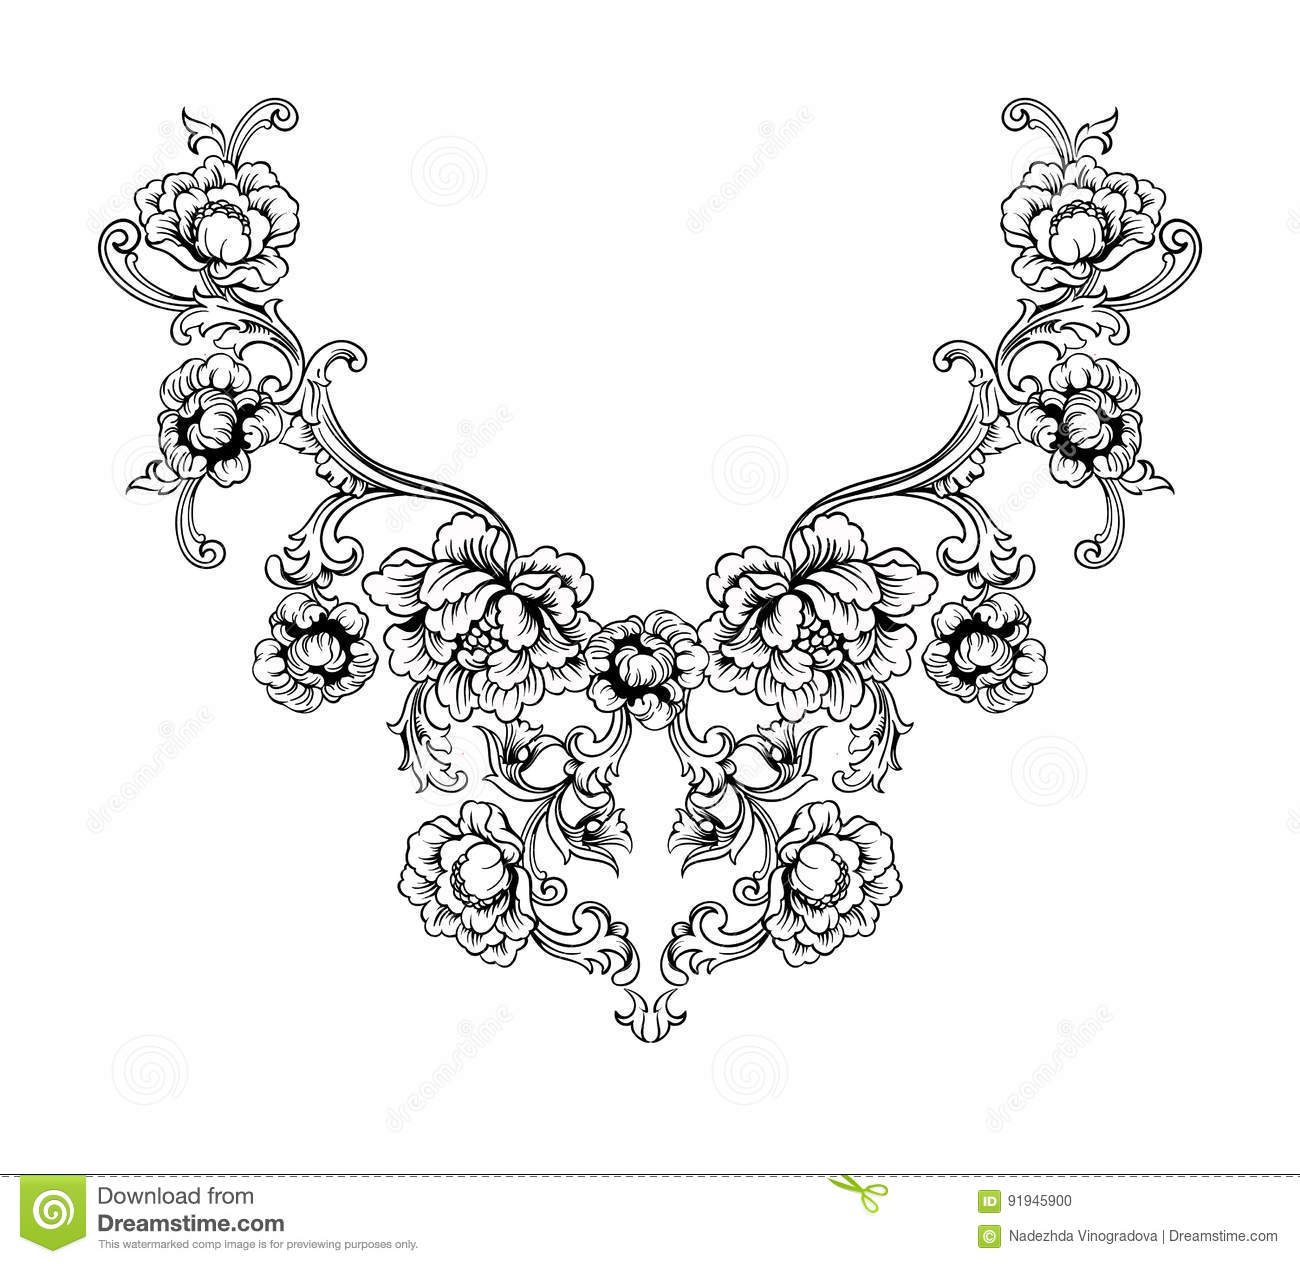 Floral Neck Embroidery Design In Baroque Style. Stock Vector ...